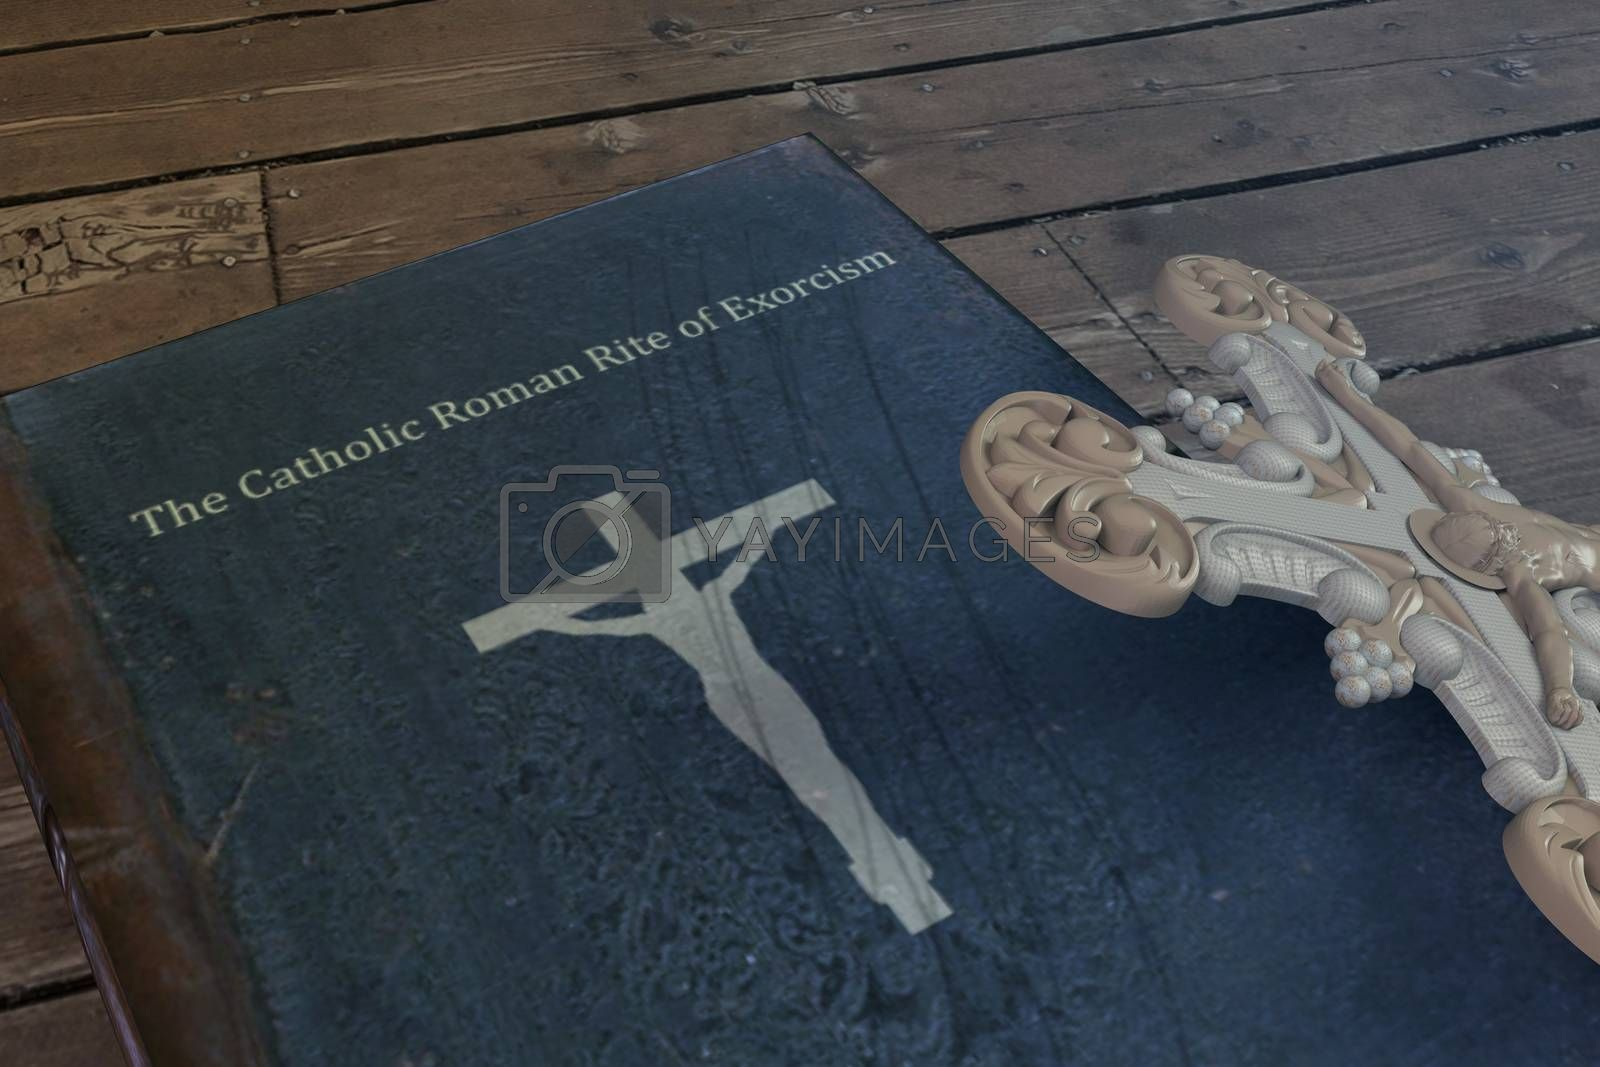 exorcism book on wooden floor by lamianuovasupermail@gmail.com